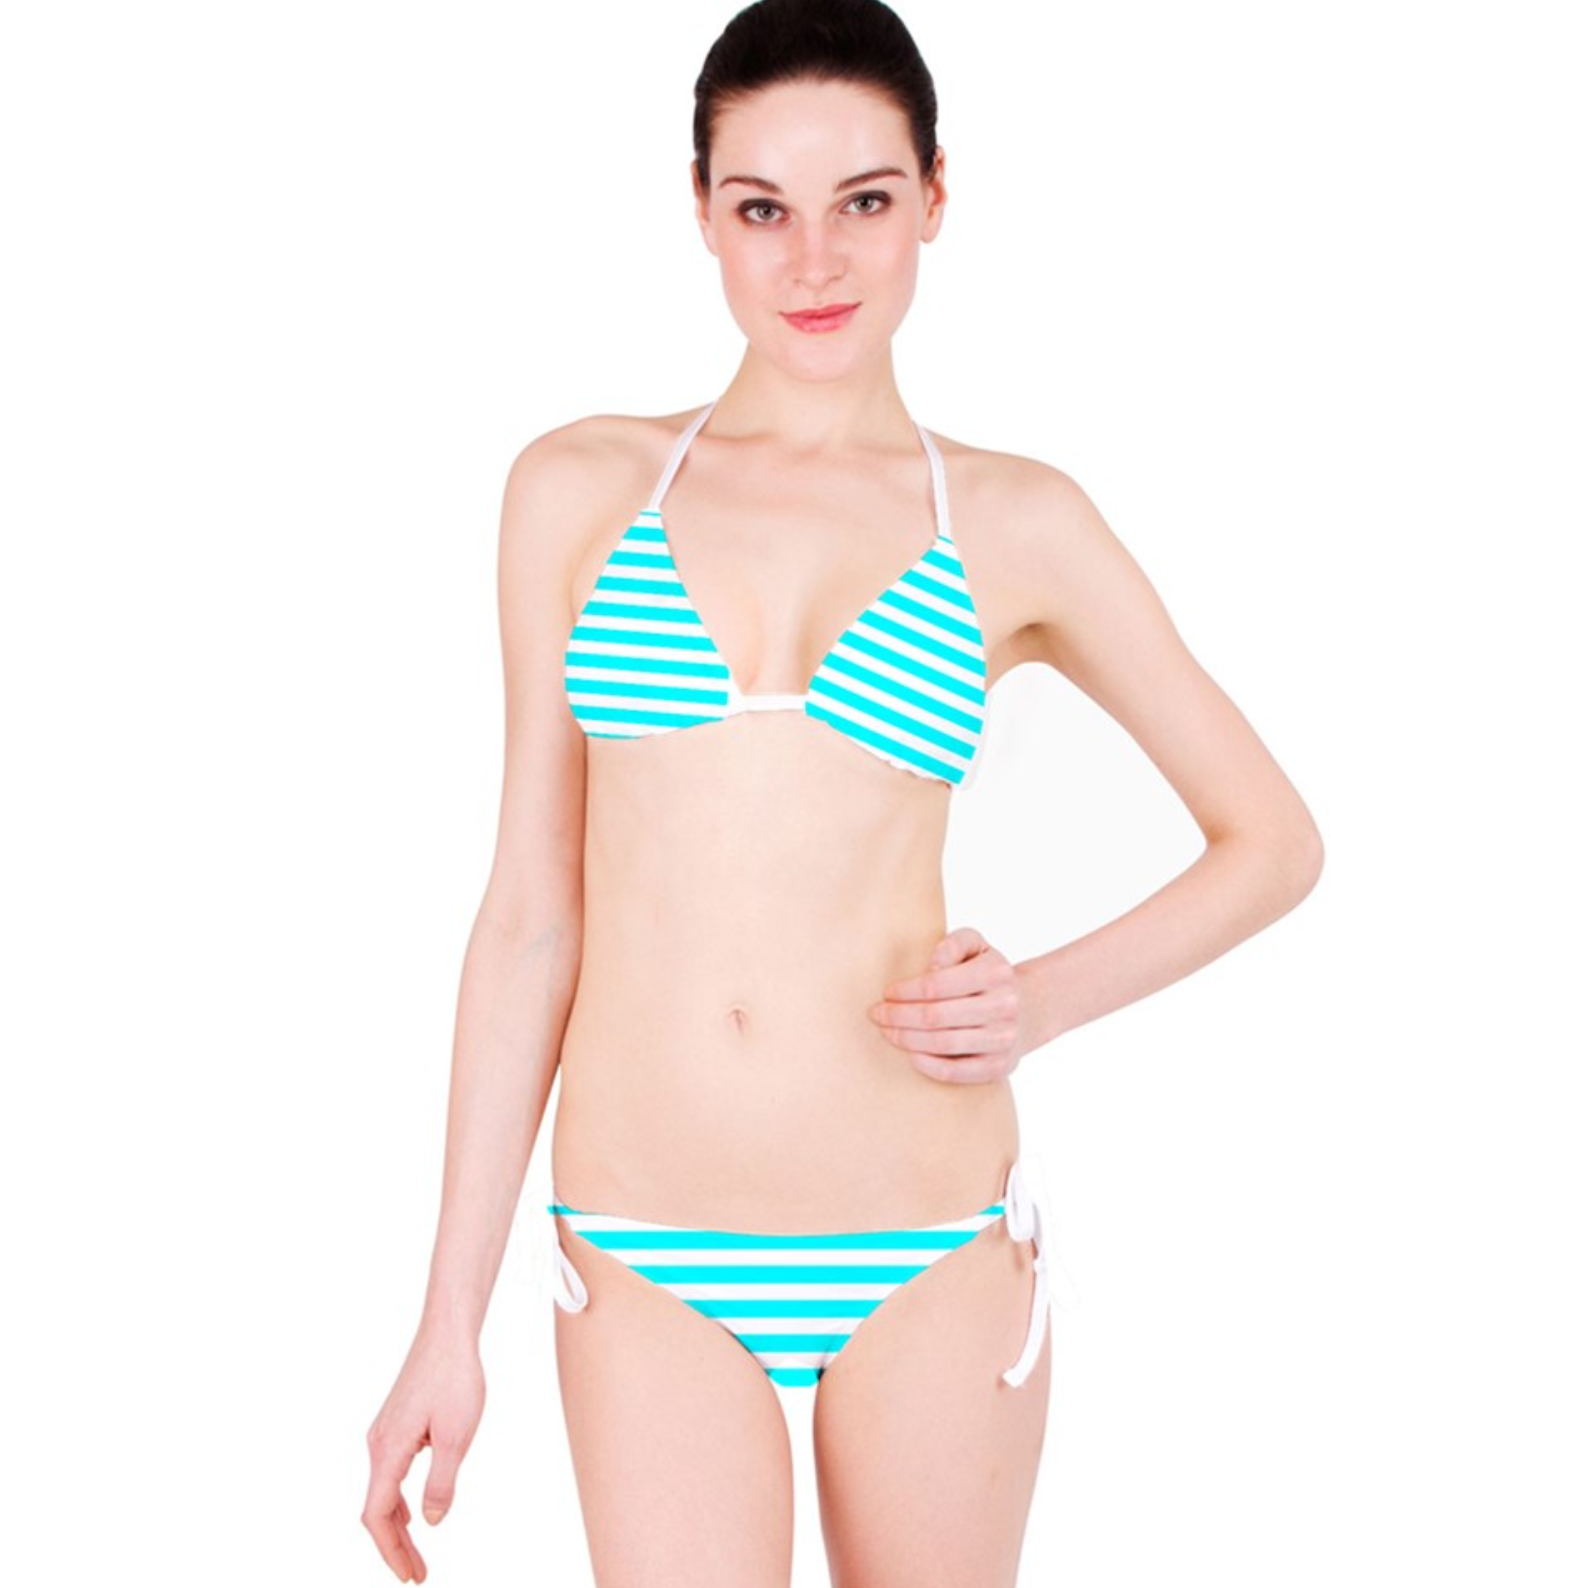 e66d0f6ae Hatsune Miku - Blue Teal Aqua Striped Bikini on Storenvy